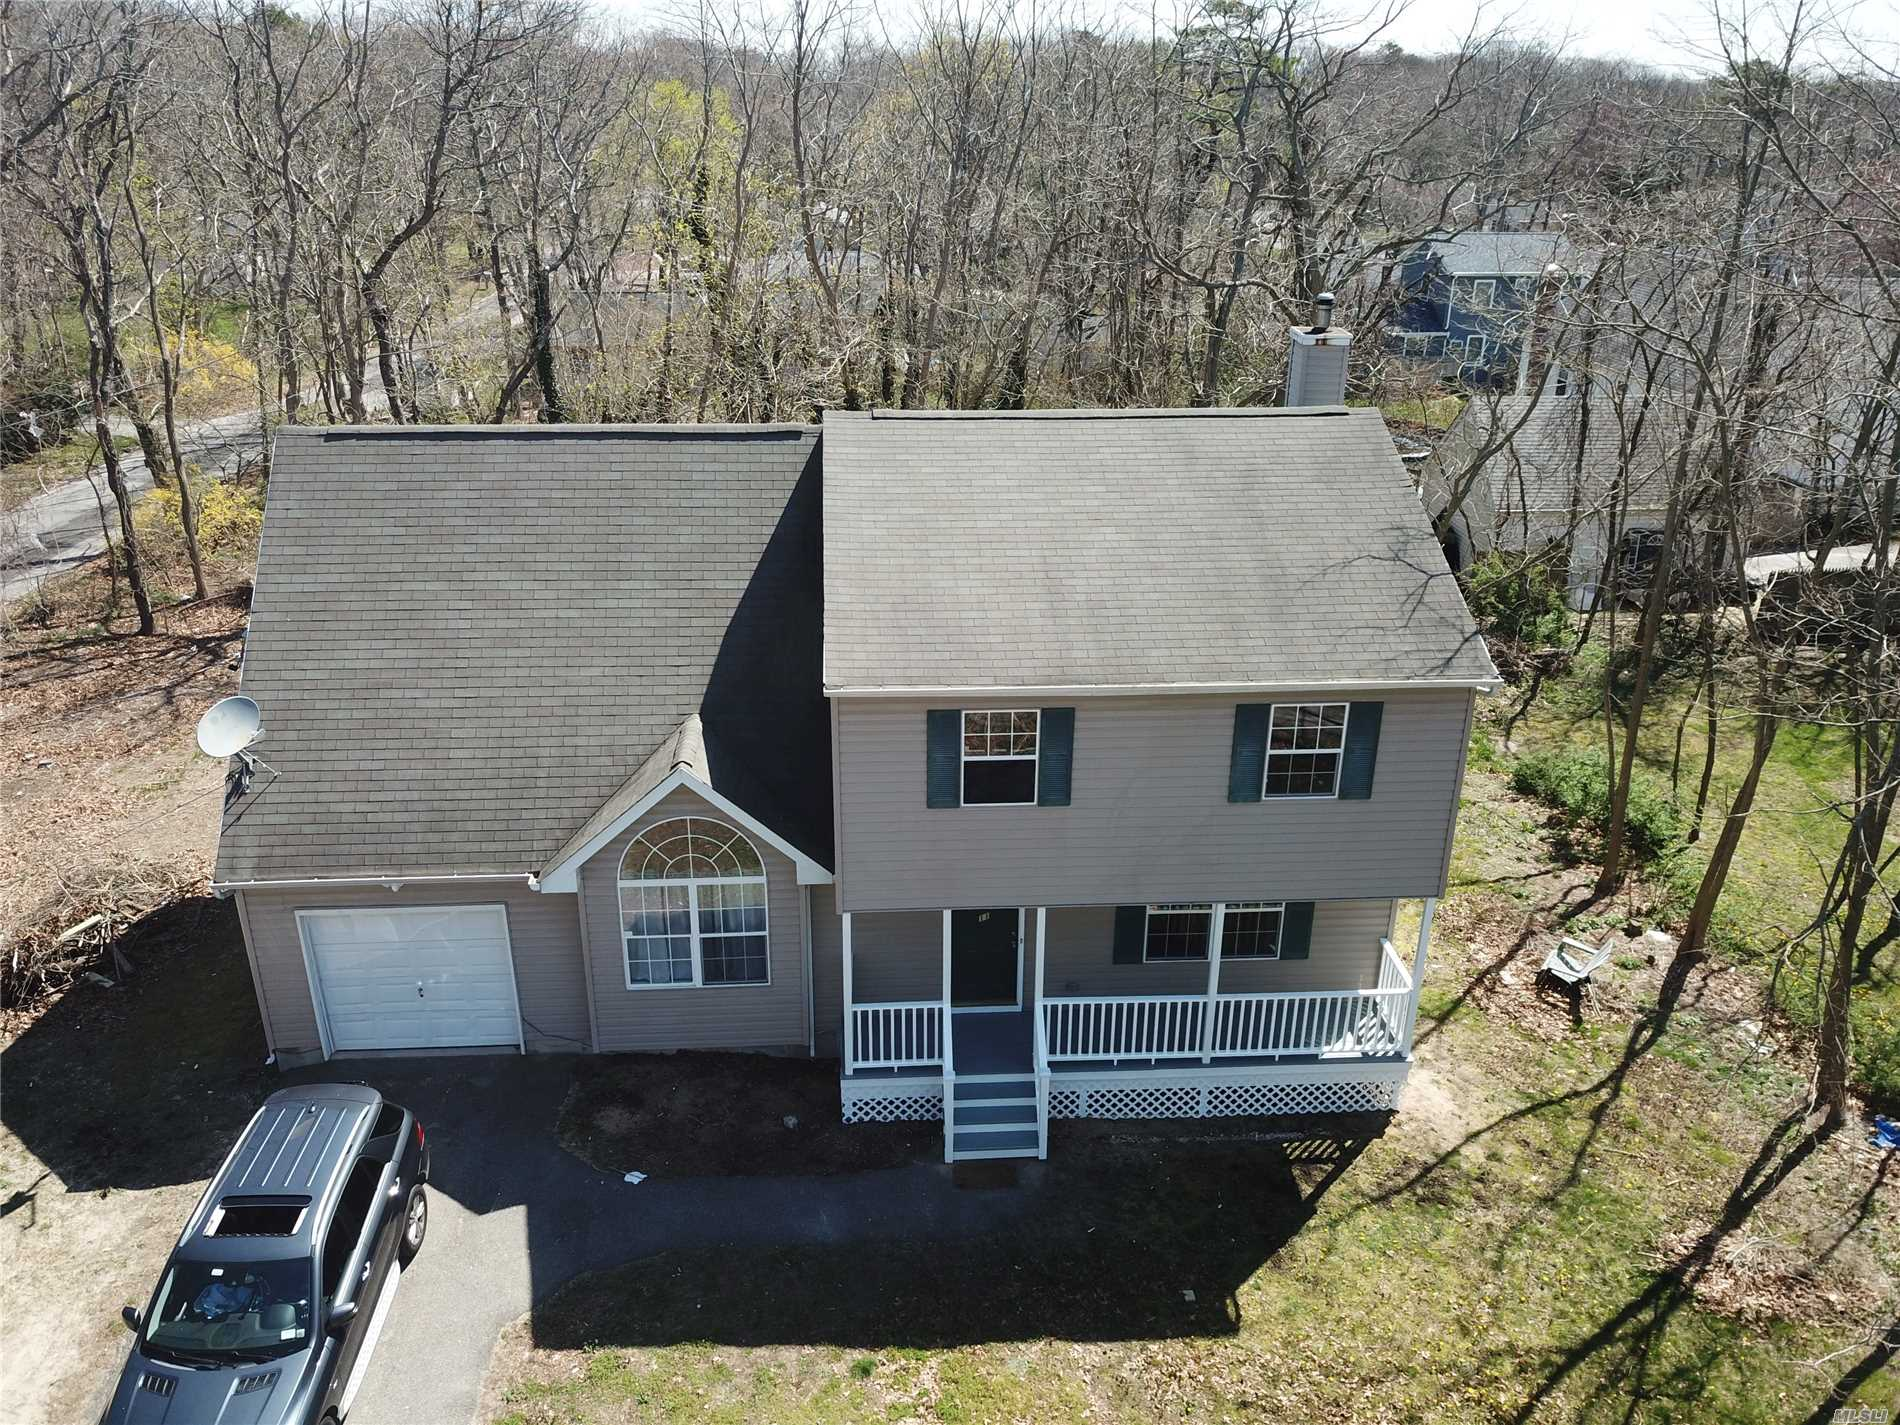 Renovated, Big Colonial, Huge Master, New Appliances, New Interiors, New Floors, New Sheetrock, New Electric 150 Amps, 1 Car Garage, Huge Family Den W/ Vaulted Ceilings, New Bathrooms, Large Lush Corner Property.